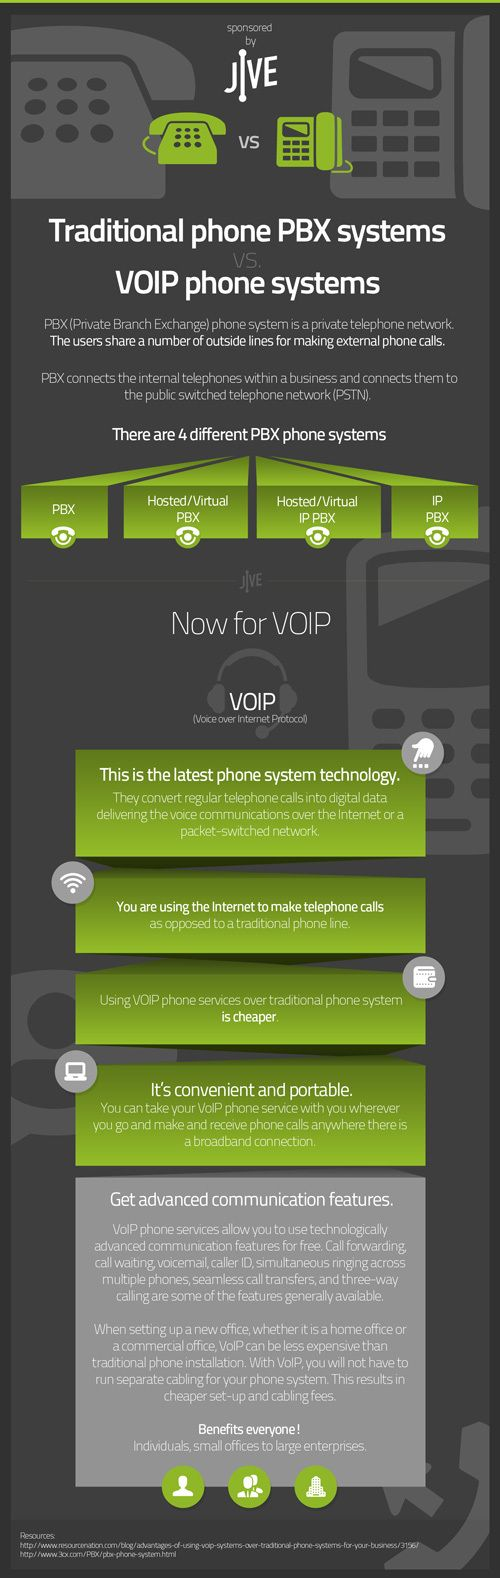 What is voip and how you - Voip Pbx Phone System Are You Considering Trying Voip If So You Should Check This